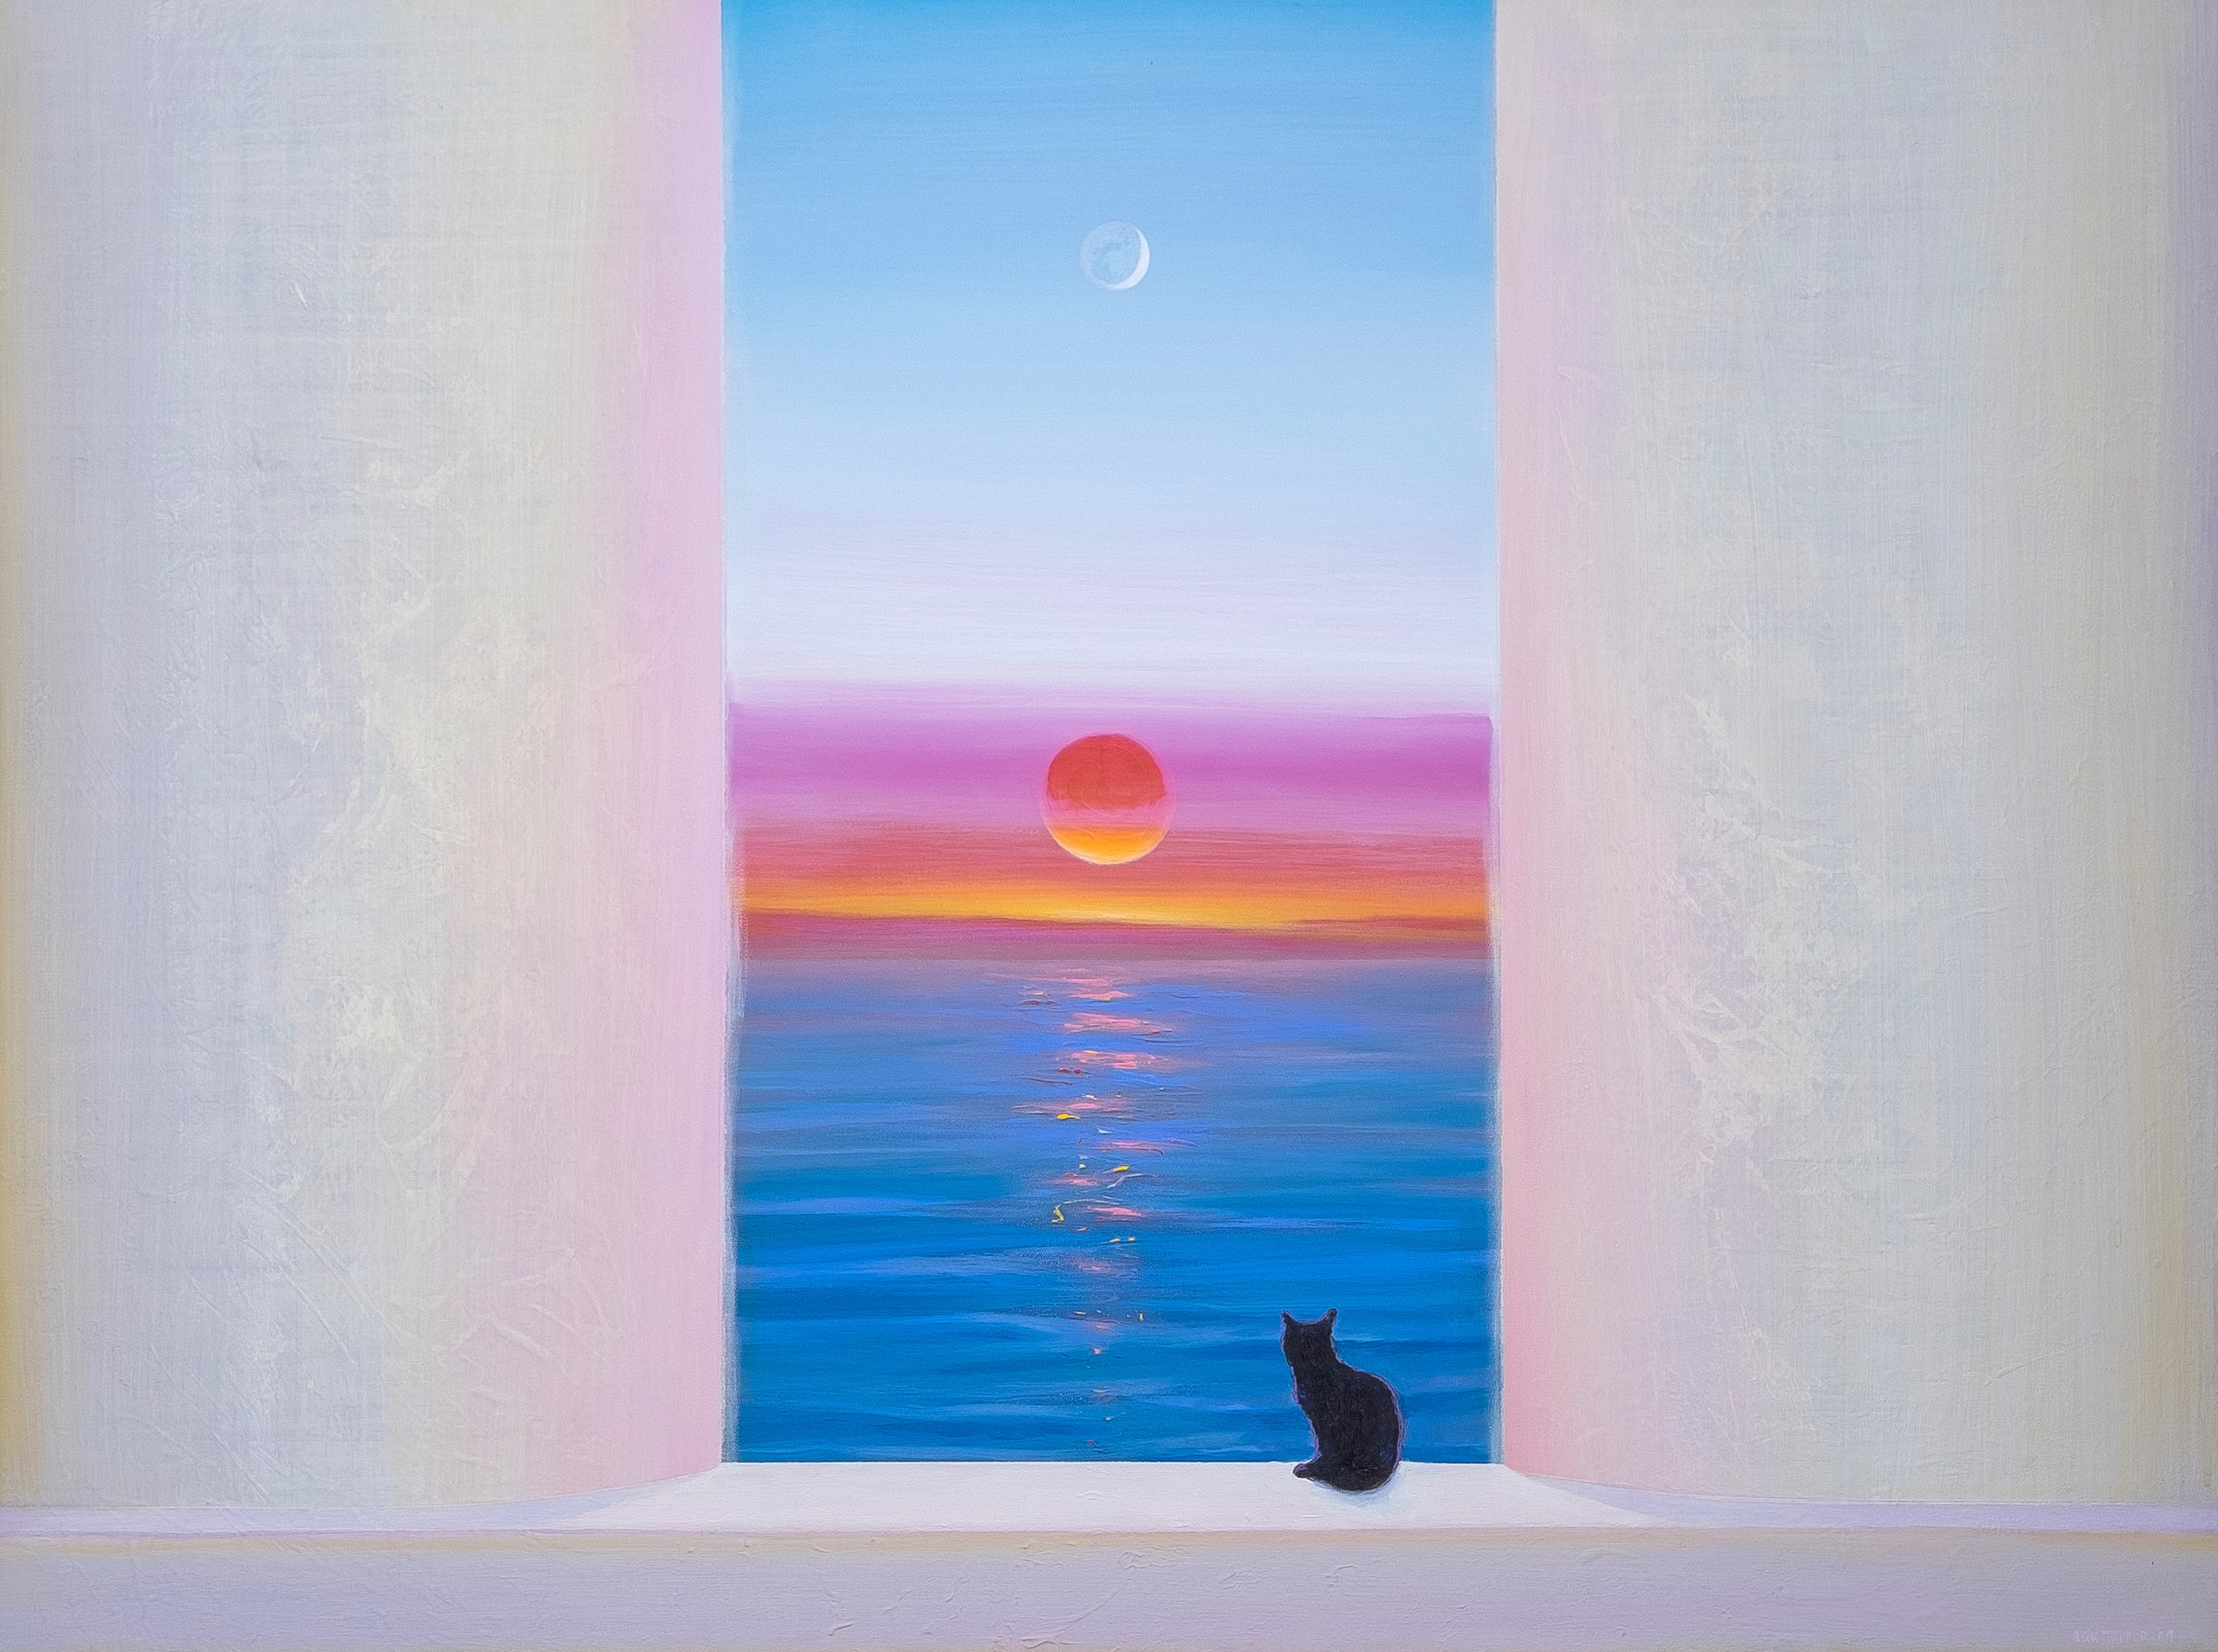 Evening with Sun, Moon and Cat